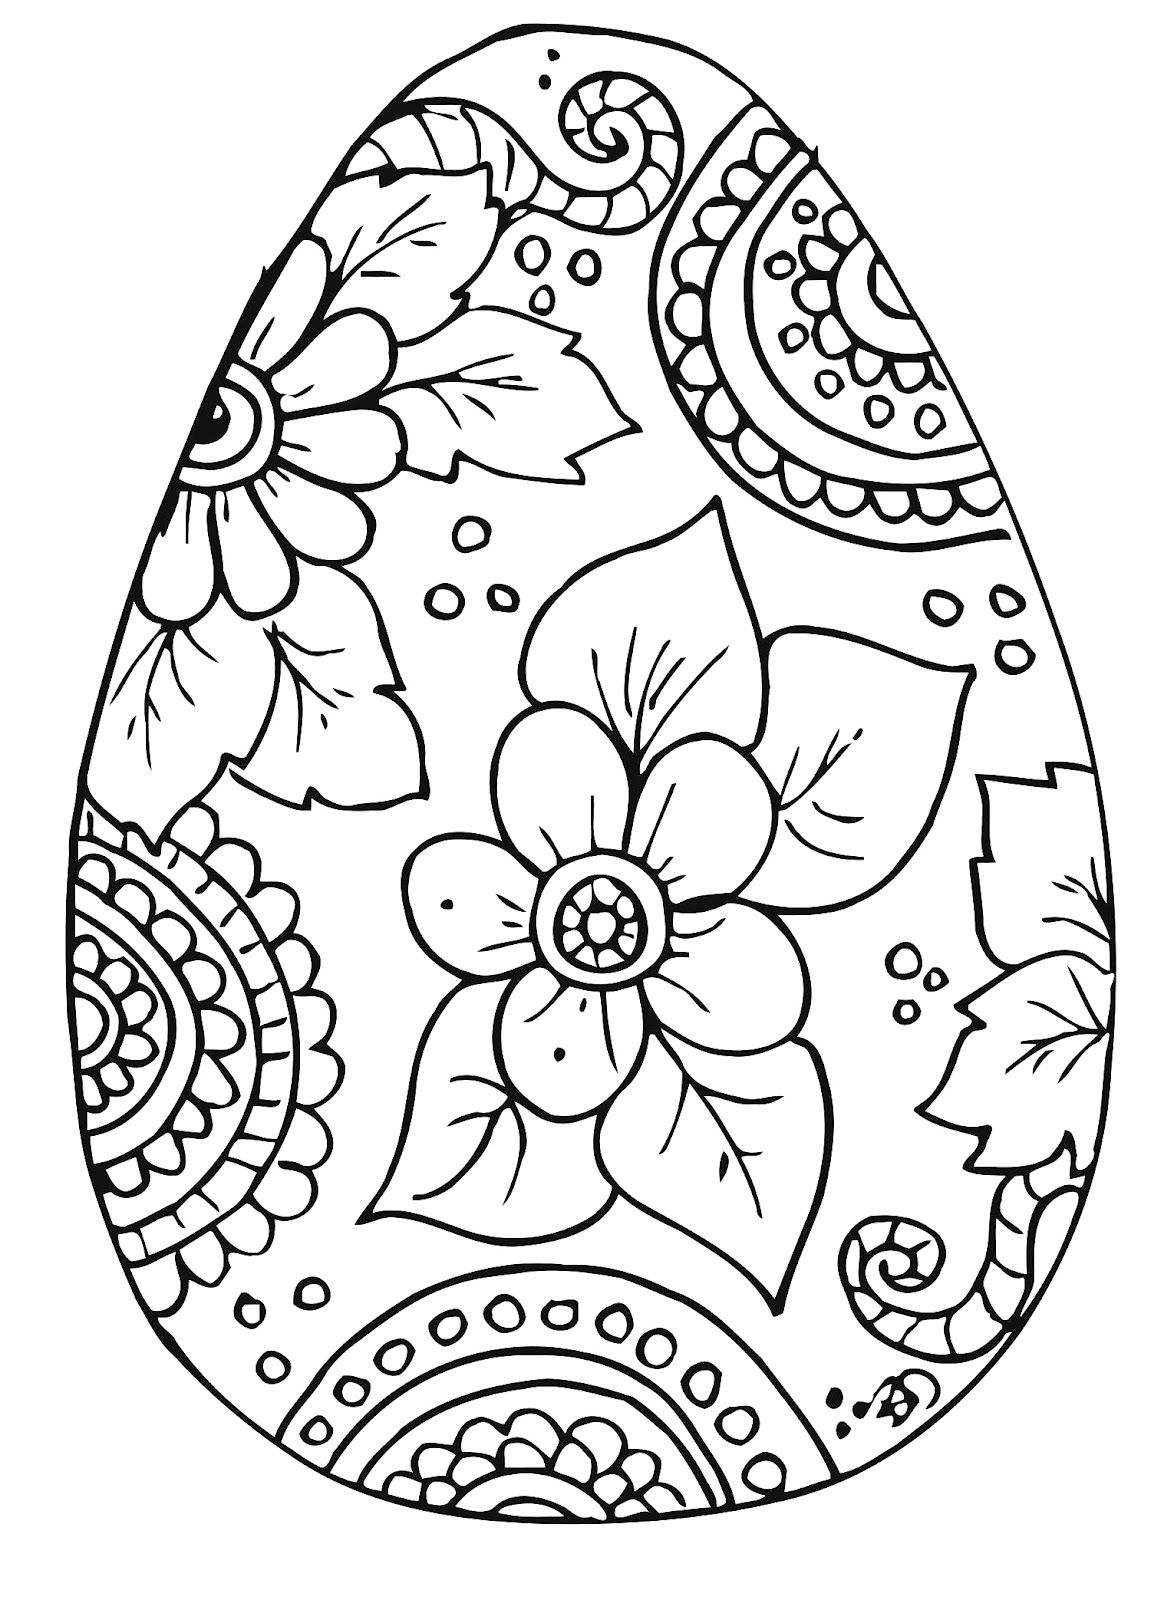 Leuke Kleuropdracht Voor De Lente Lesopdrachten Pasen Easter Easter Egg Coloring Pages Easter Coloring Pages Coloring Easter Eggs